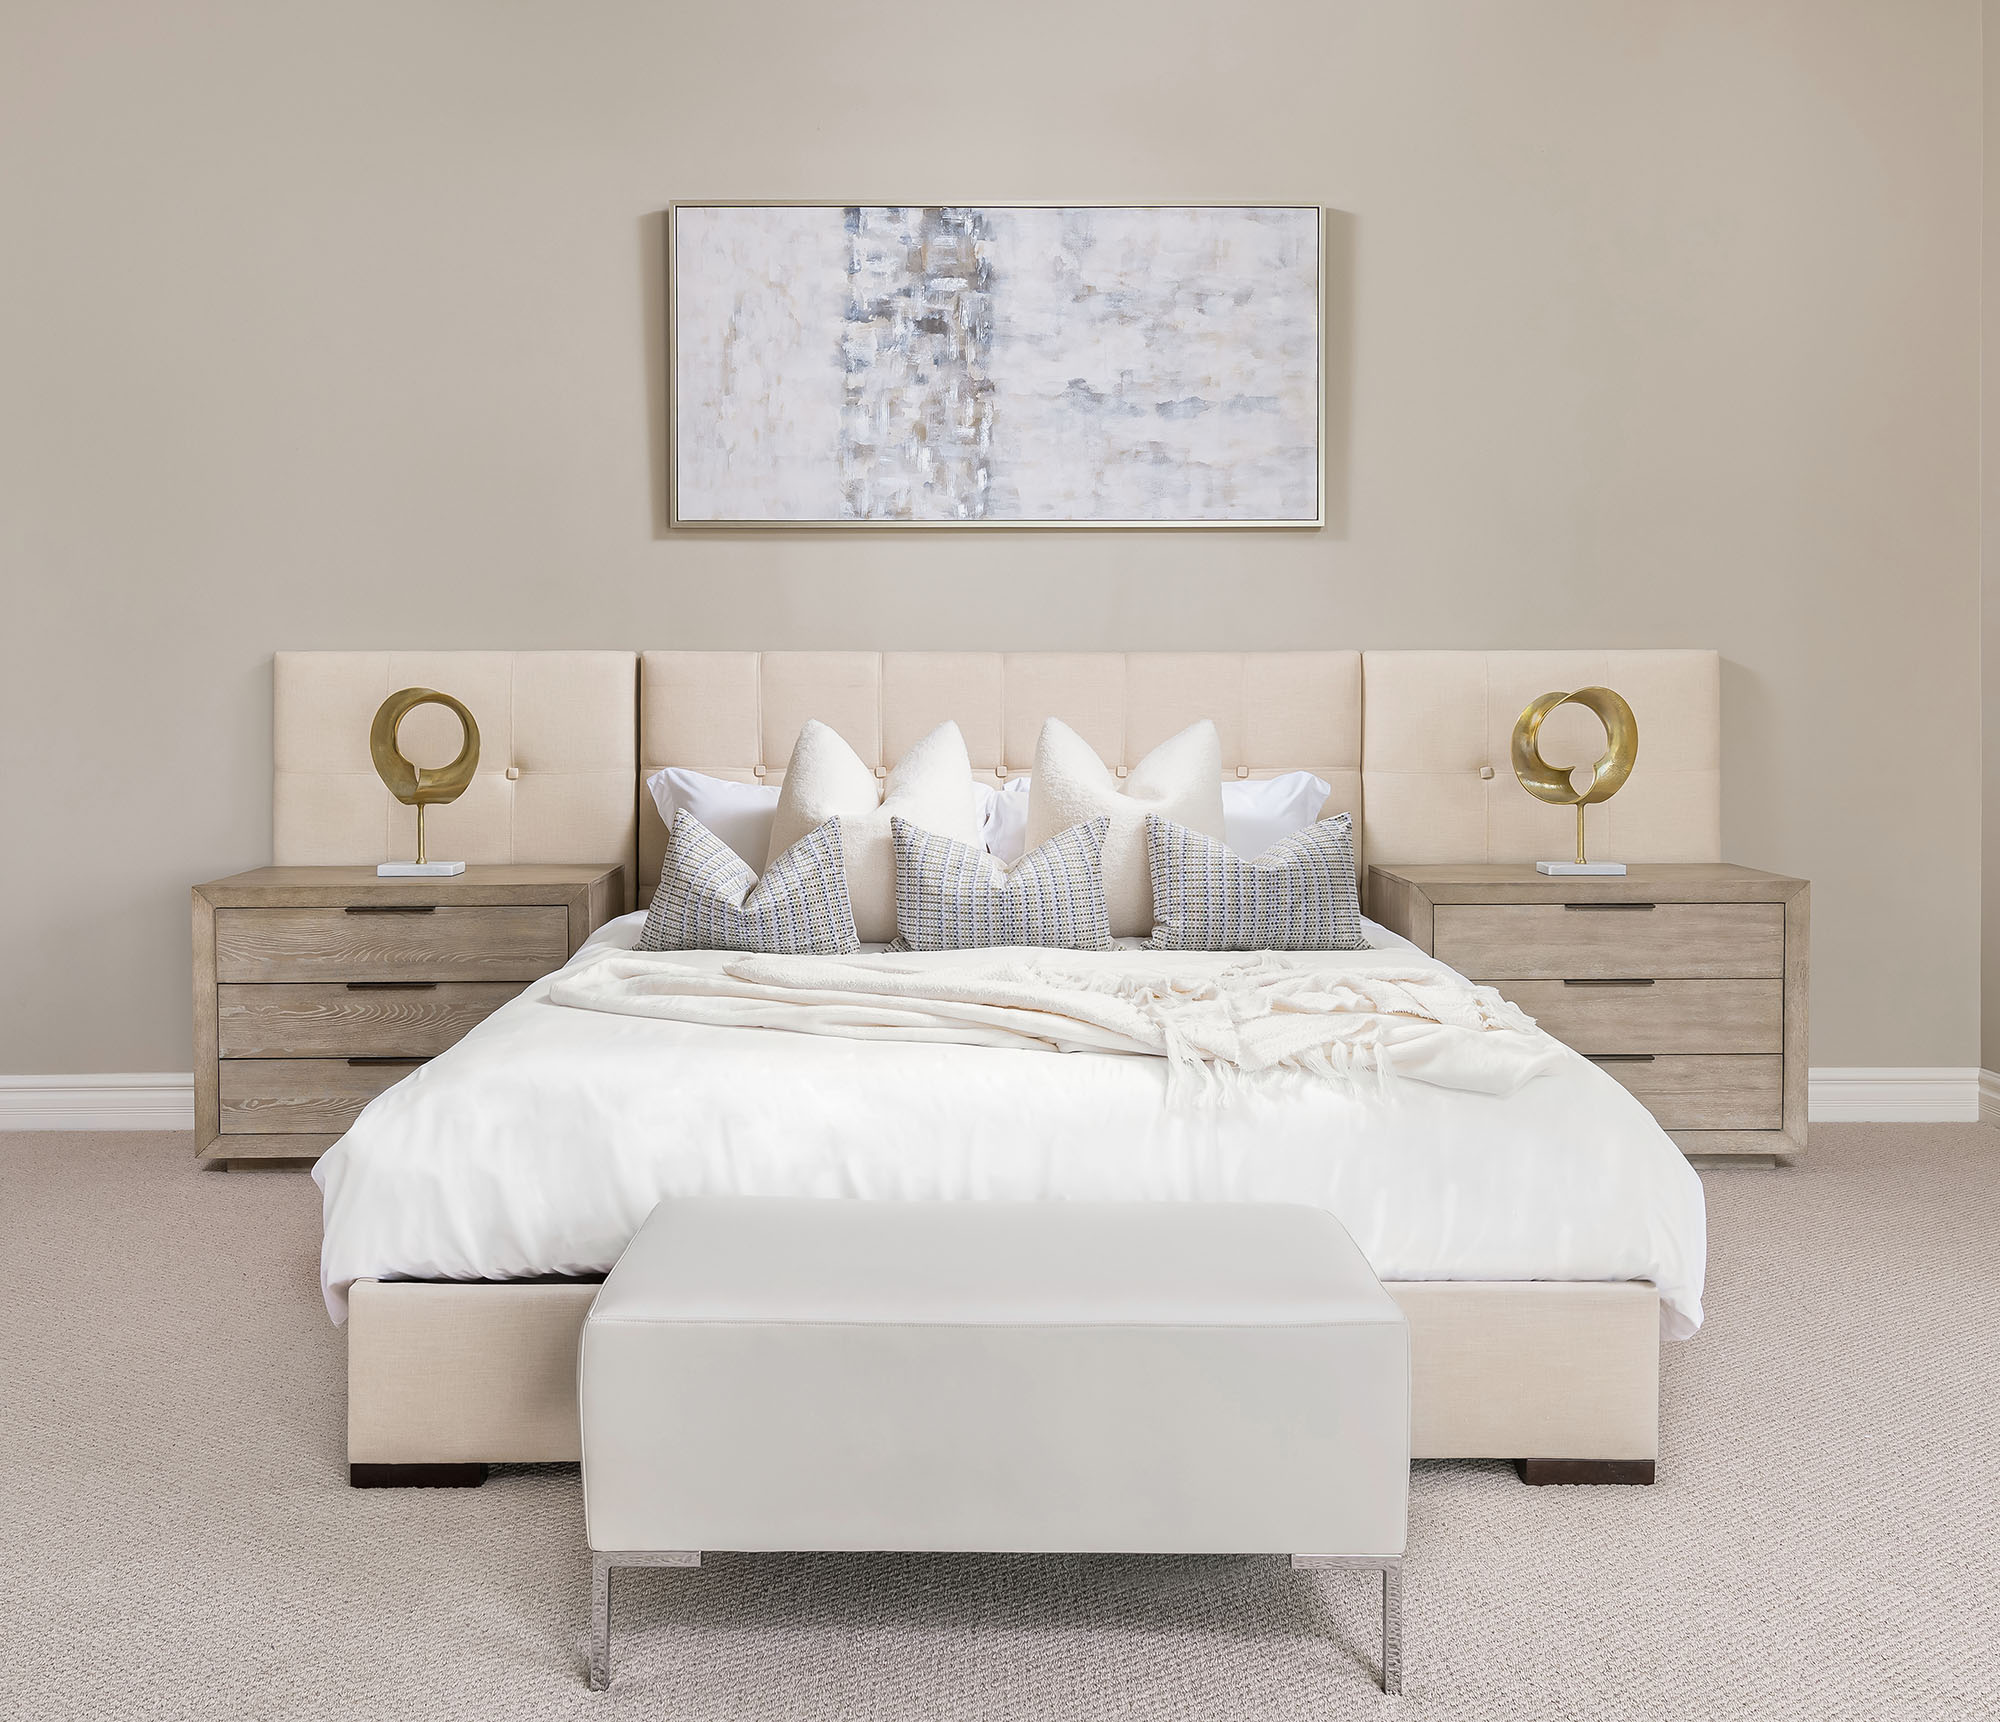 Stately_Home_Staging-2297_FA-021-Master_Bedroom.jpg